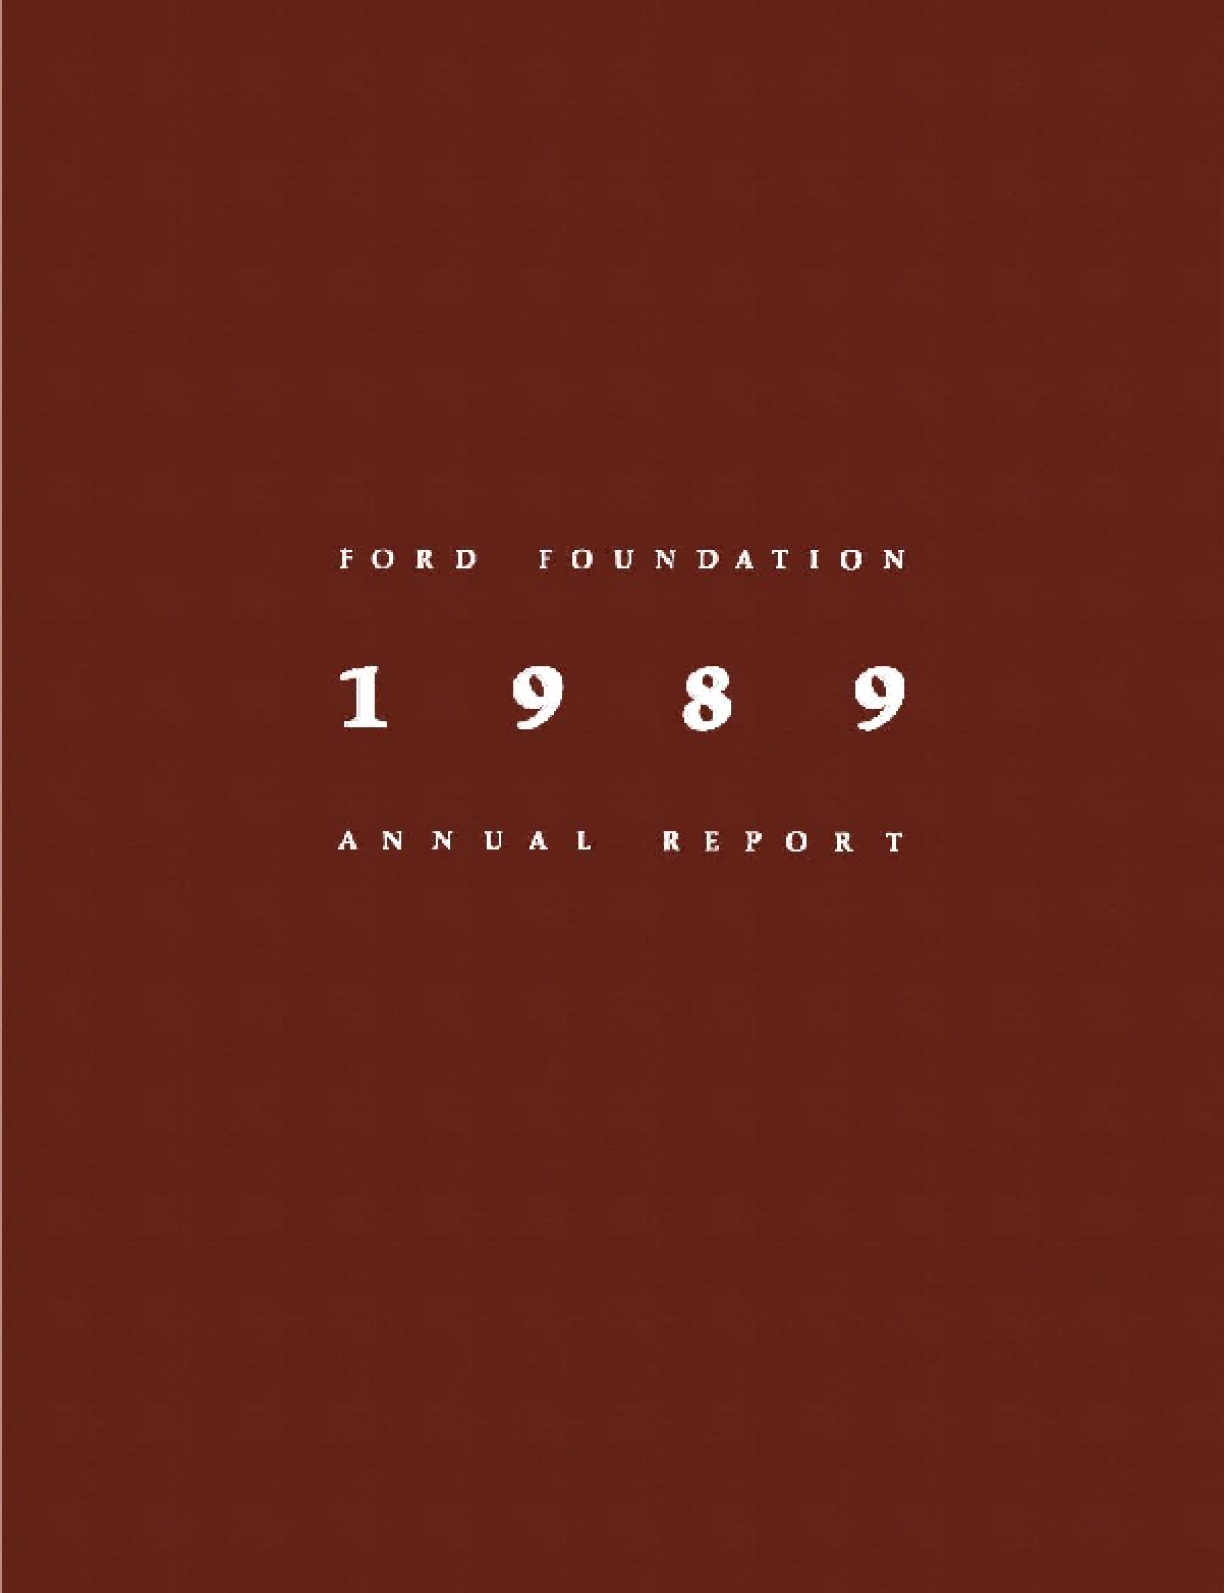 Ford Foundation - 1989 Annual Report